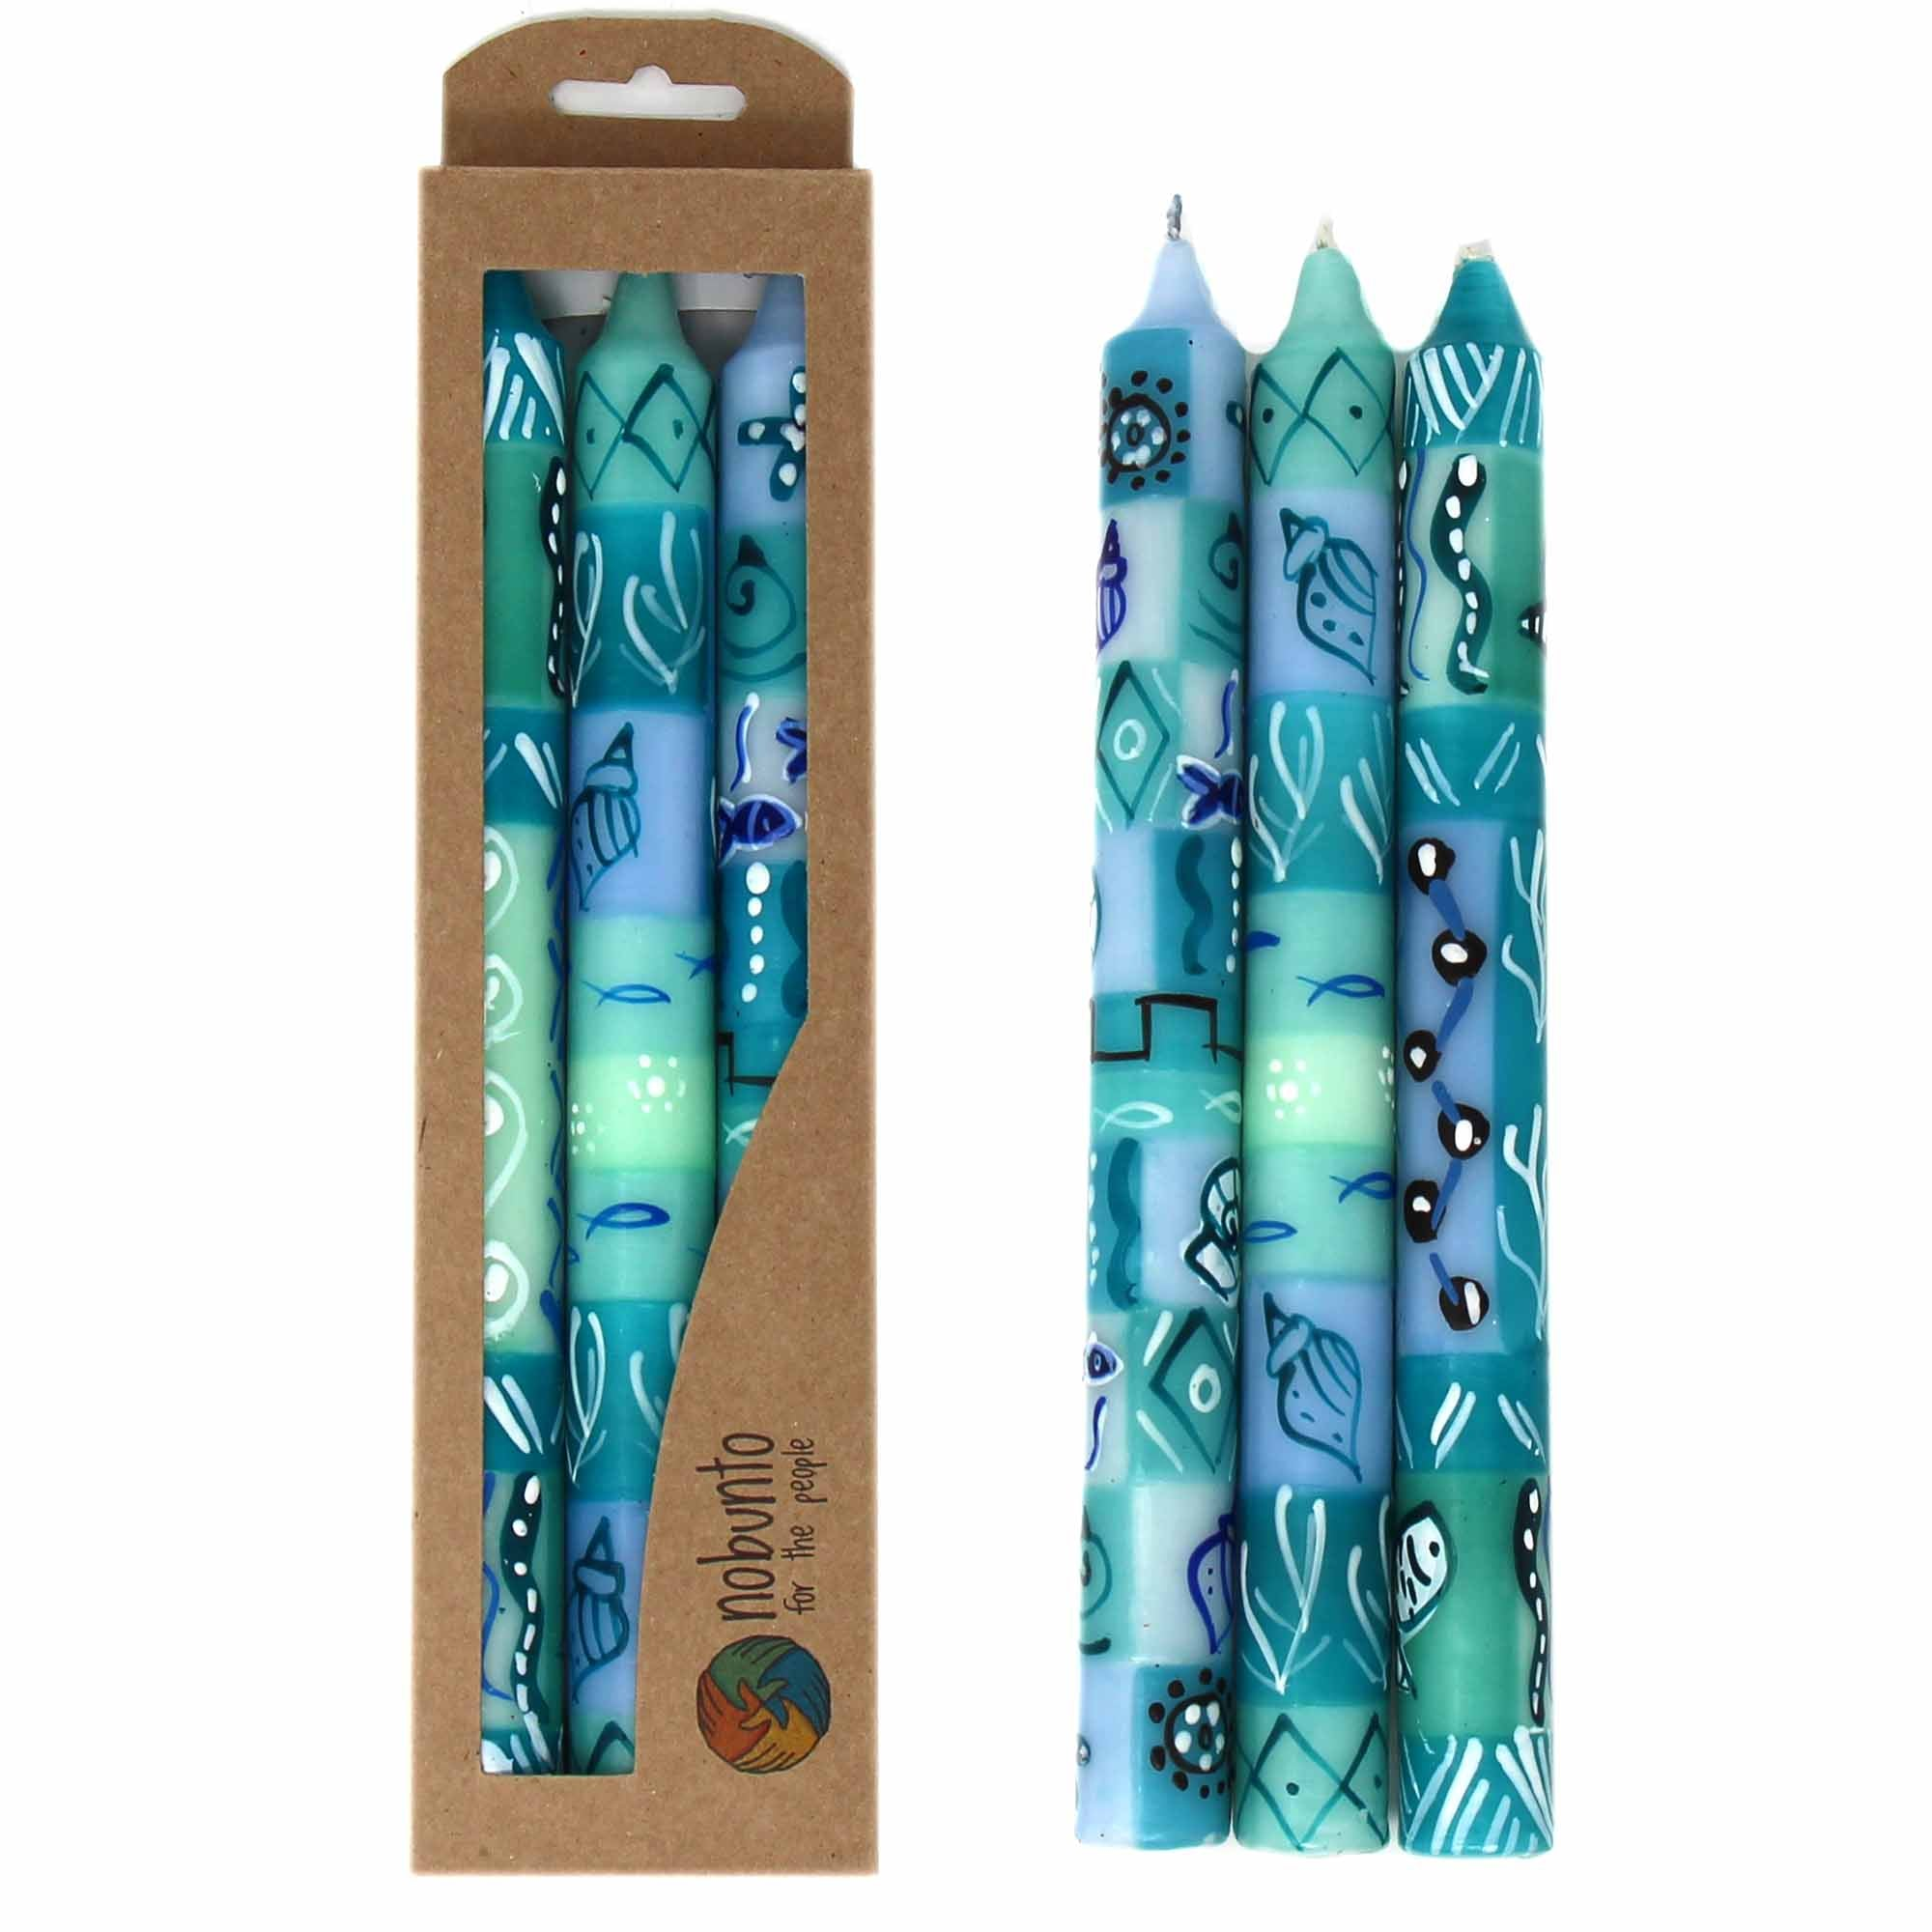 Hand-Painted Dinner Candles, Set of 3 (Samaki Design)